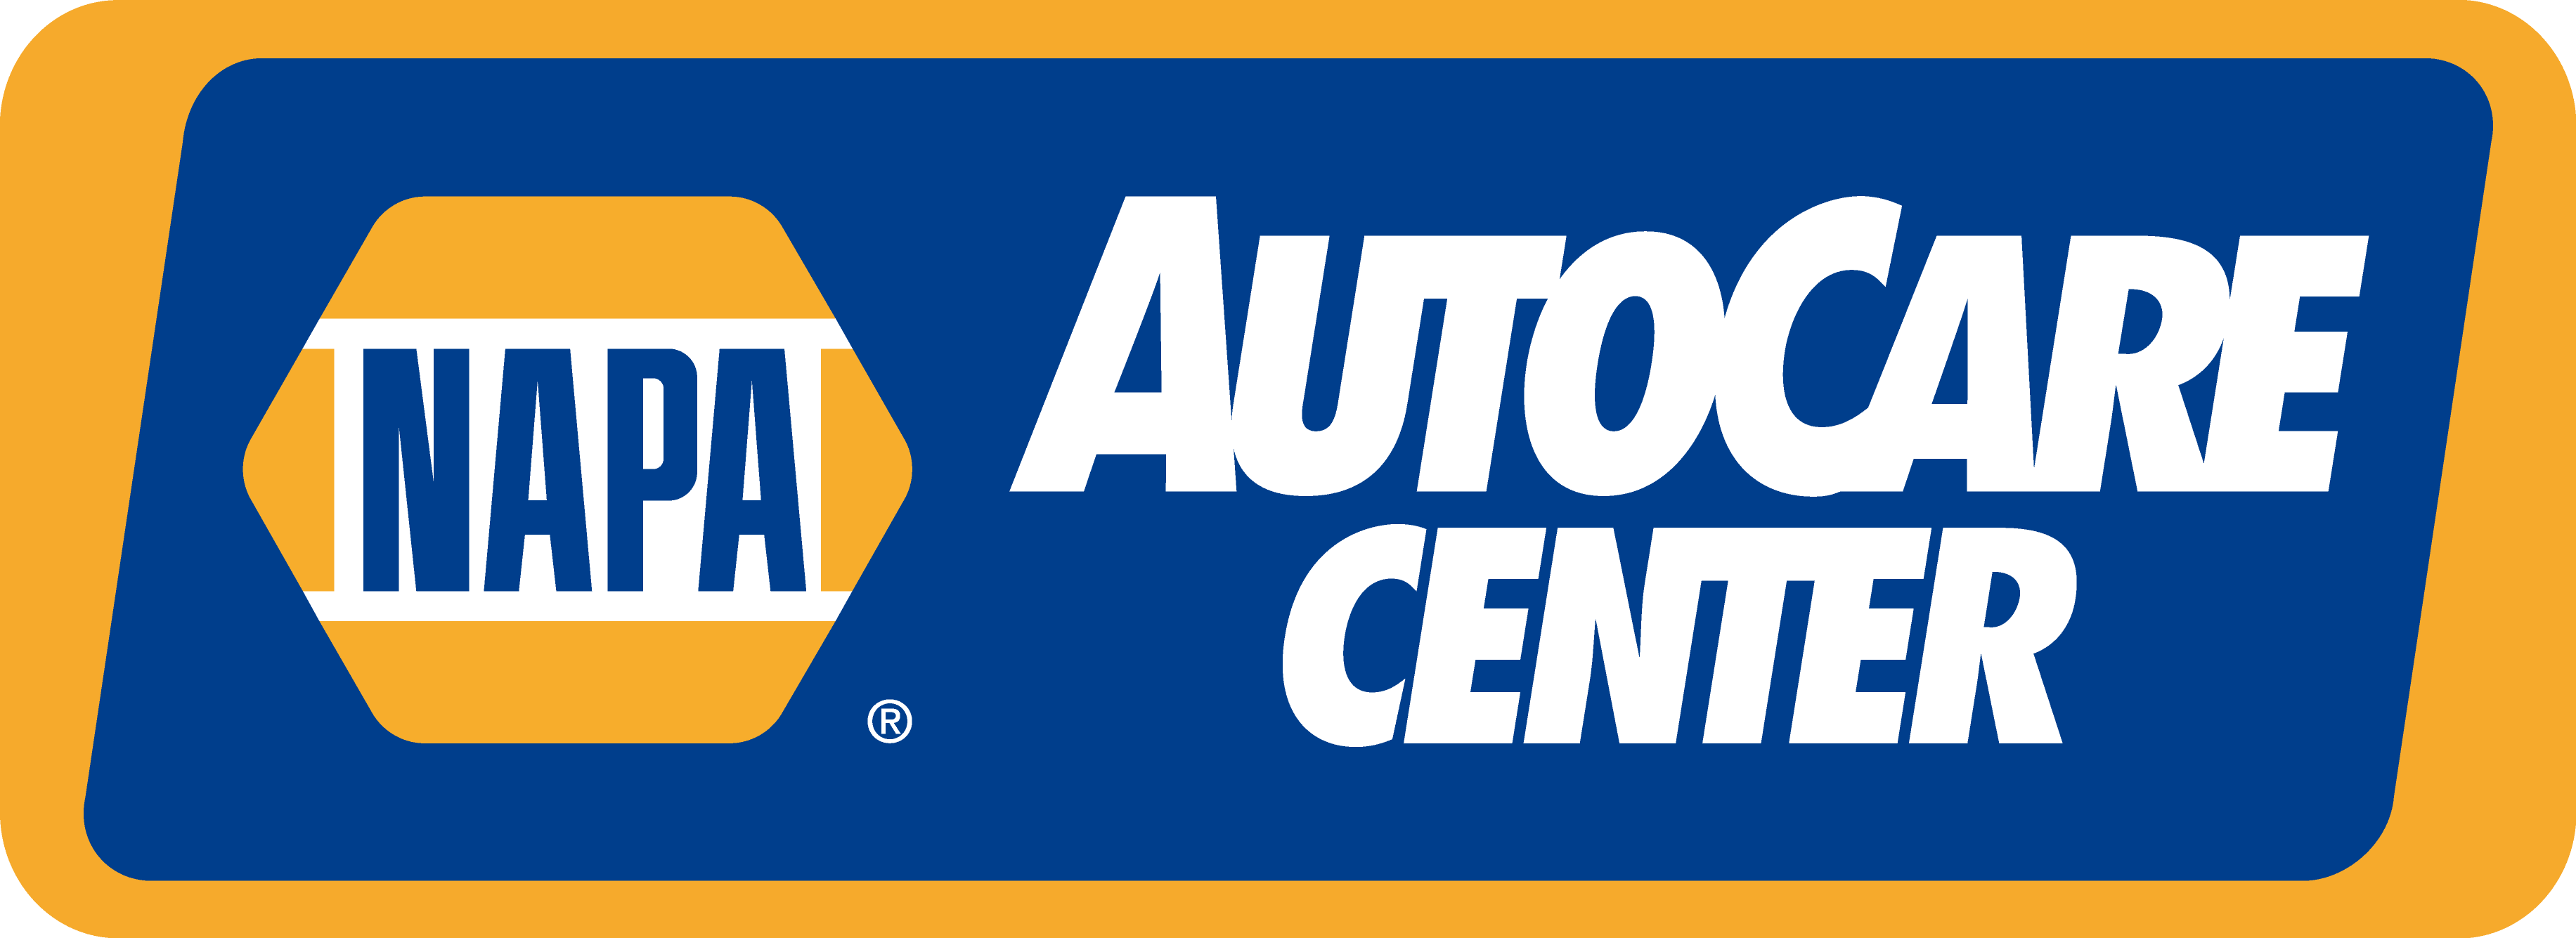 NAPA Auto Care Center, The Mechanic Inc., Albuquerque, NM, 87111